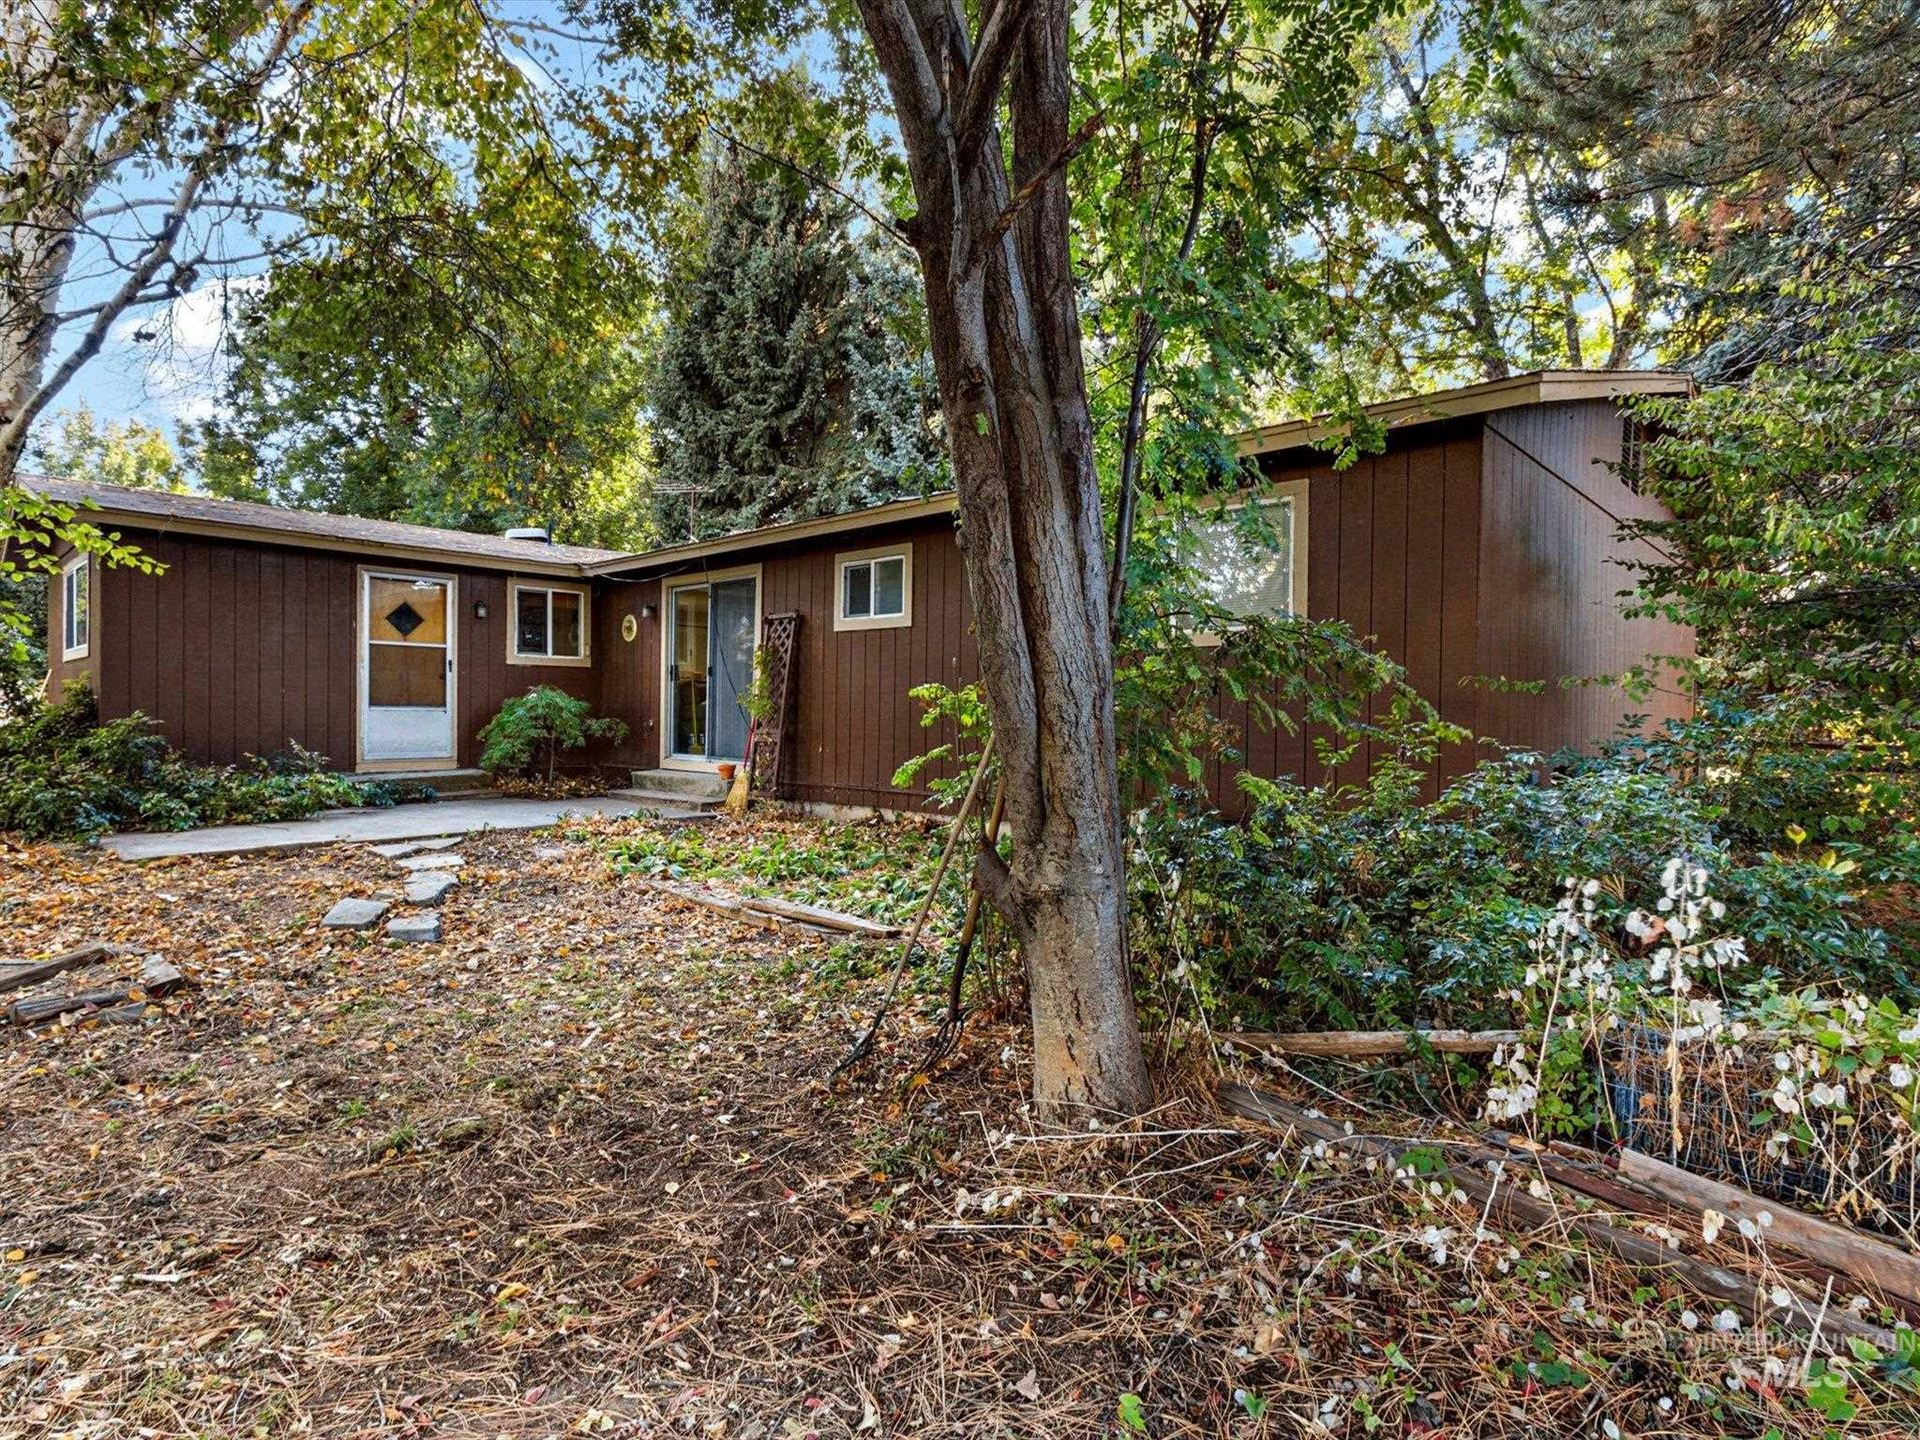 3011 S 10th Ave, Caldwell, ID 83605 - MLS#: 98822574